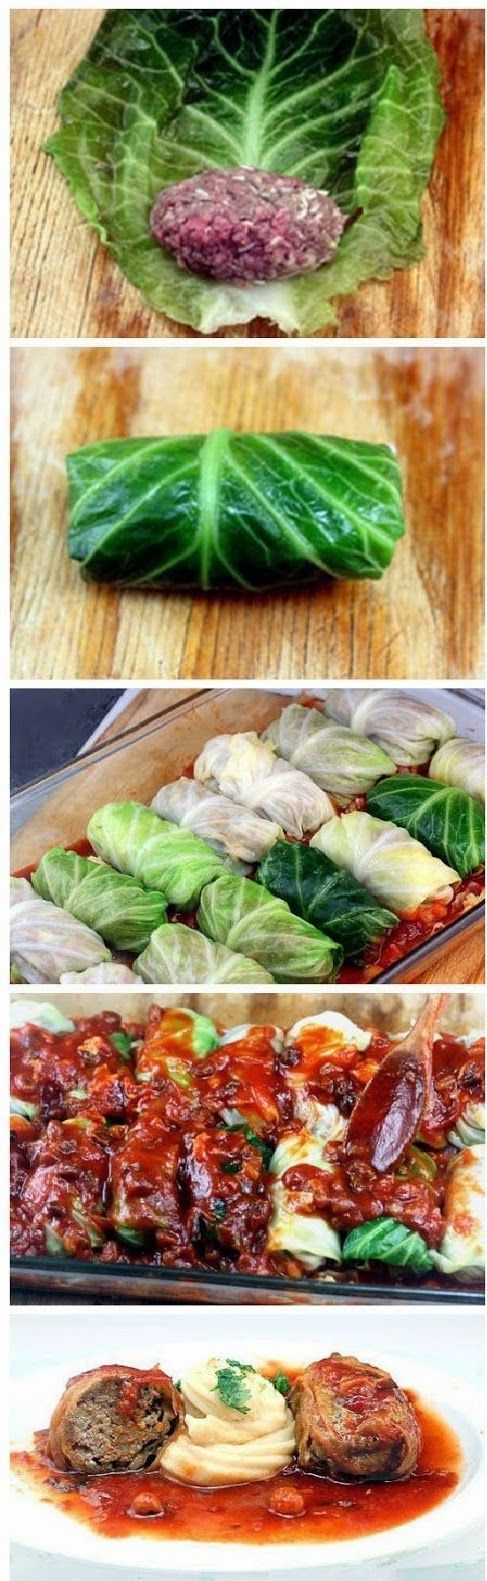 Ingredients : 2 Tablespoons vegetable oil 1 cup chopped yellow onion 1 medium head (about 2 pounds) green cabbage 1 pound ground b...